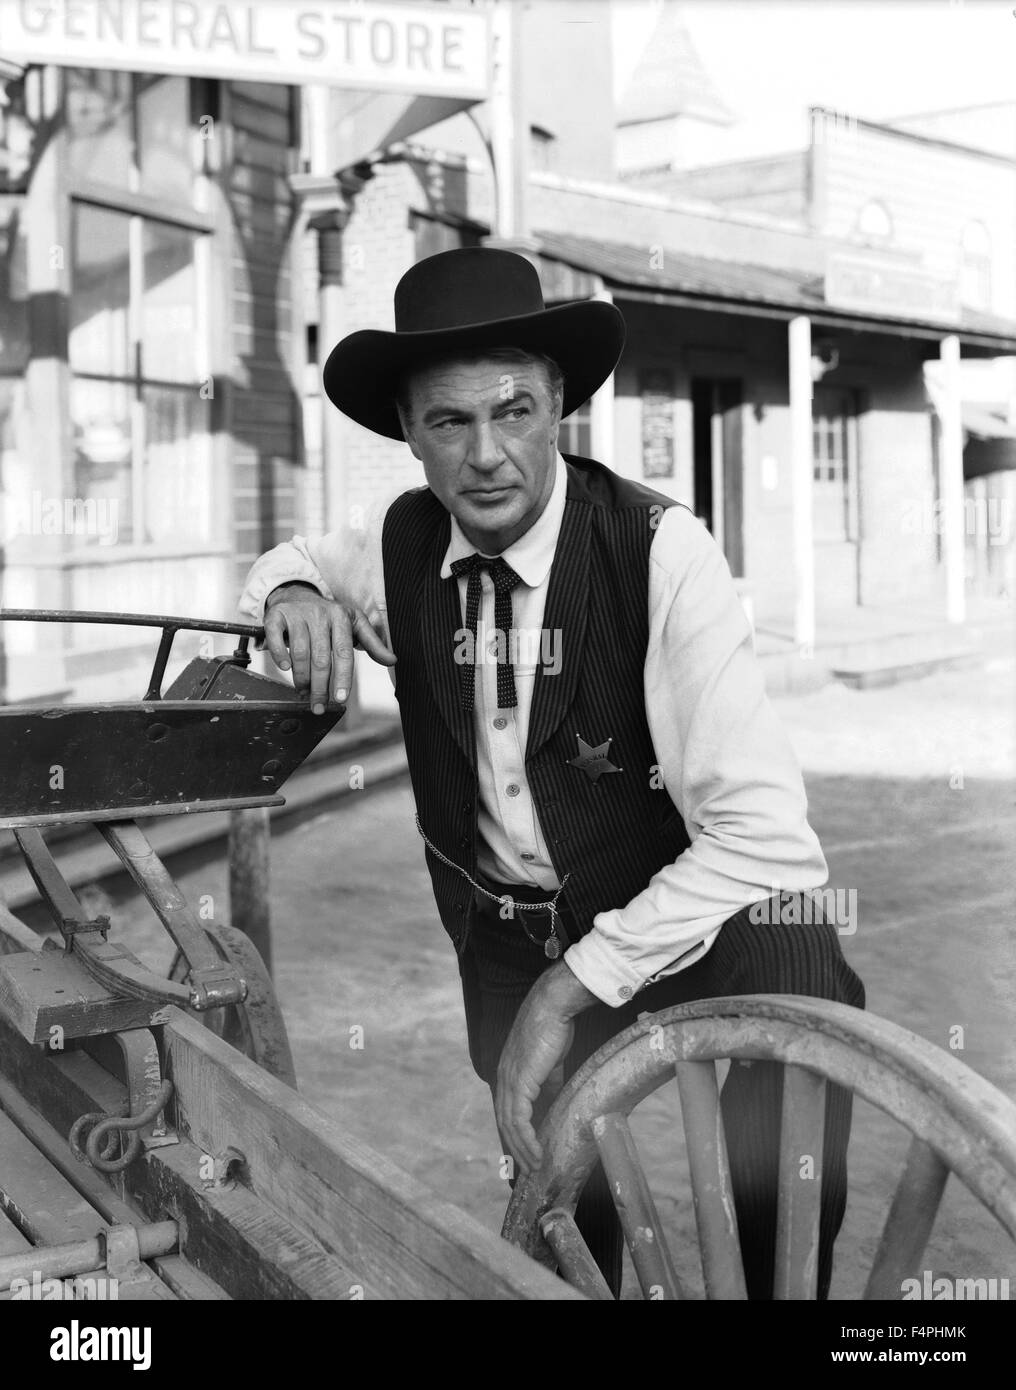 Gary Cooper as sheriff Will Kane / High Noon / 1952 directed by Fred Zinnemann [United Artists] - Stock Image